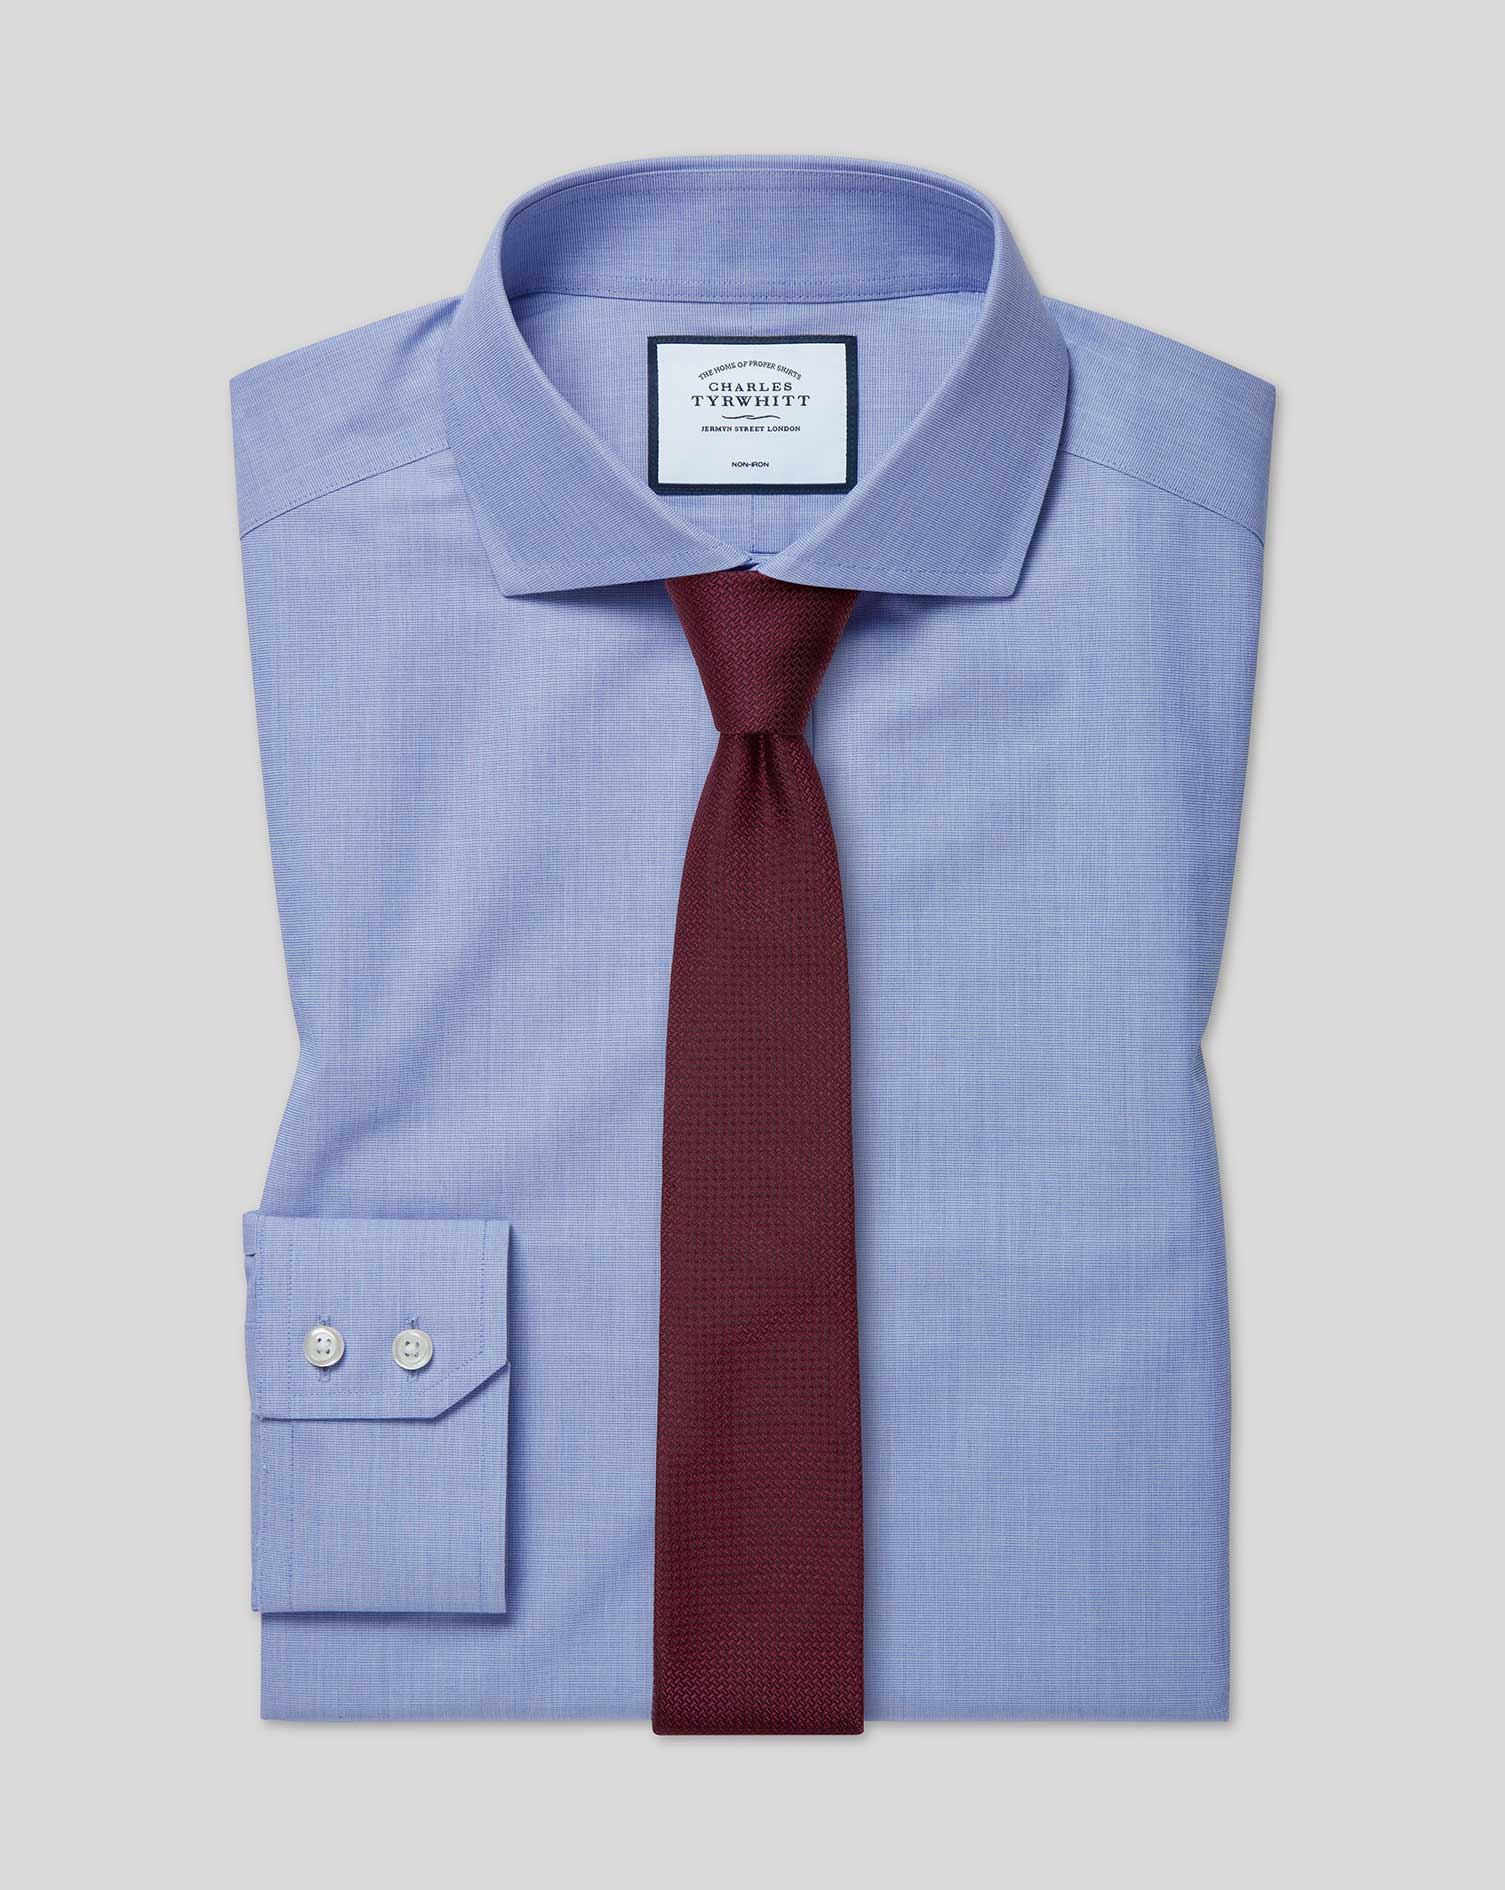 Extra Slim Fit Non-Iron 4-Way Stretch Blue Cotton Formal Shirt Single Cuff Size 16.5/35 by Charles T